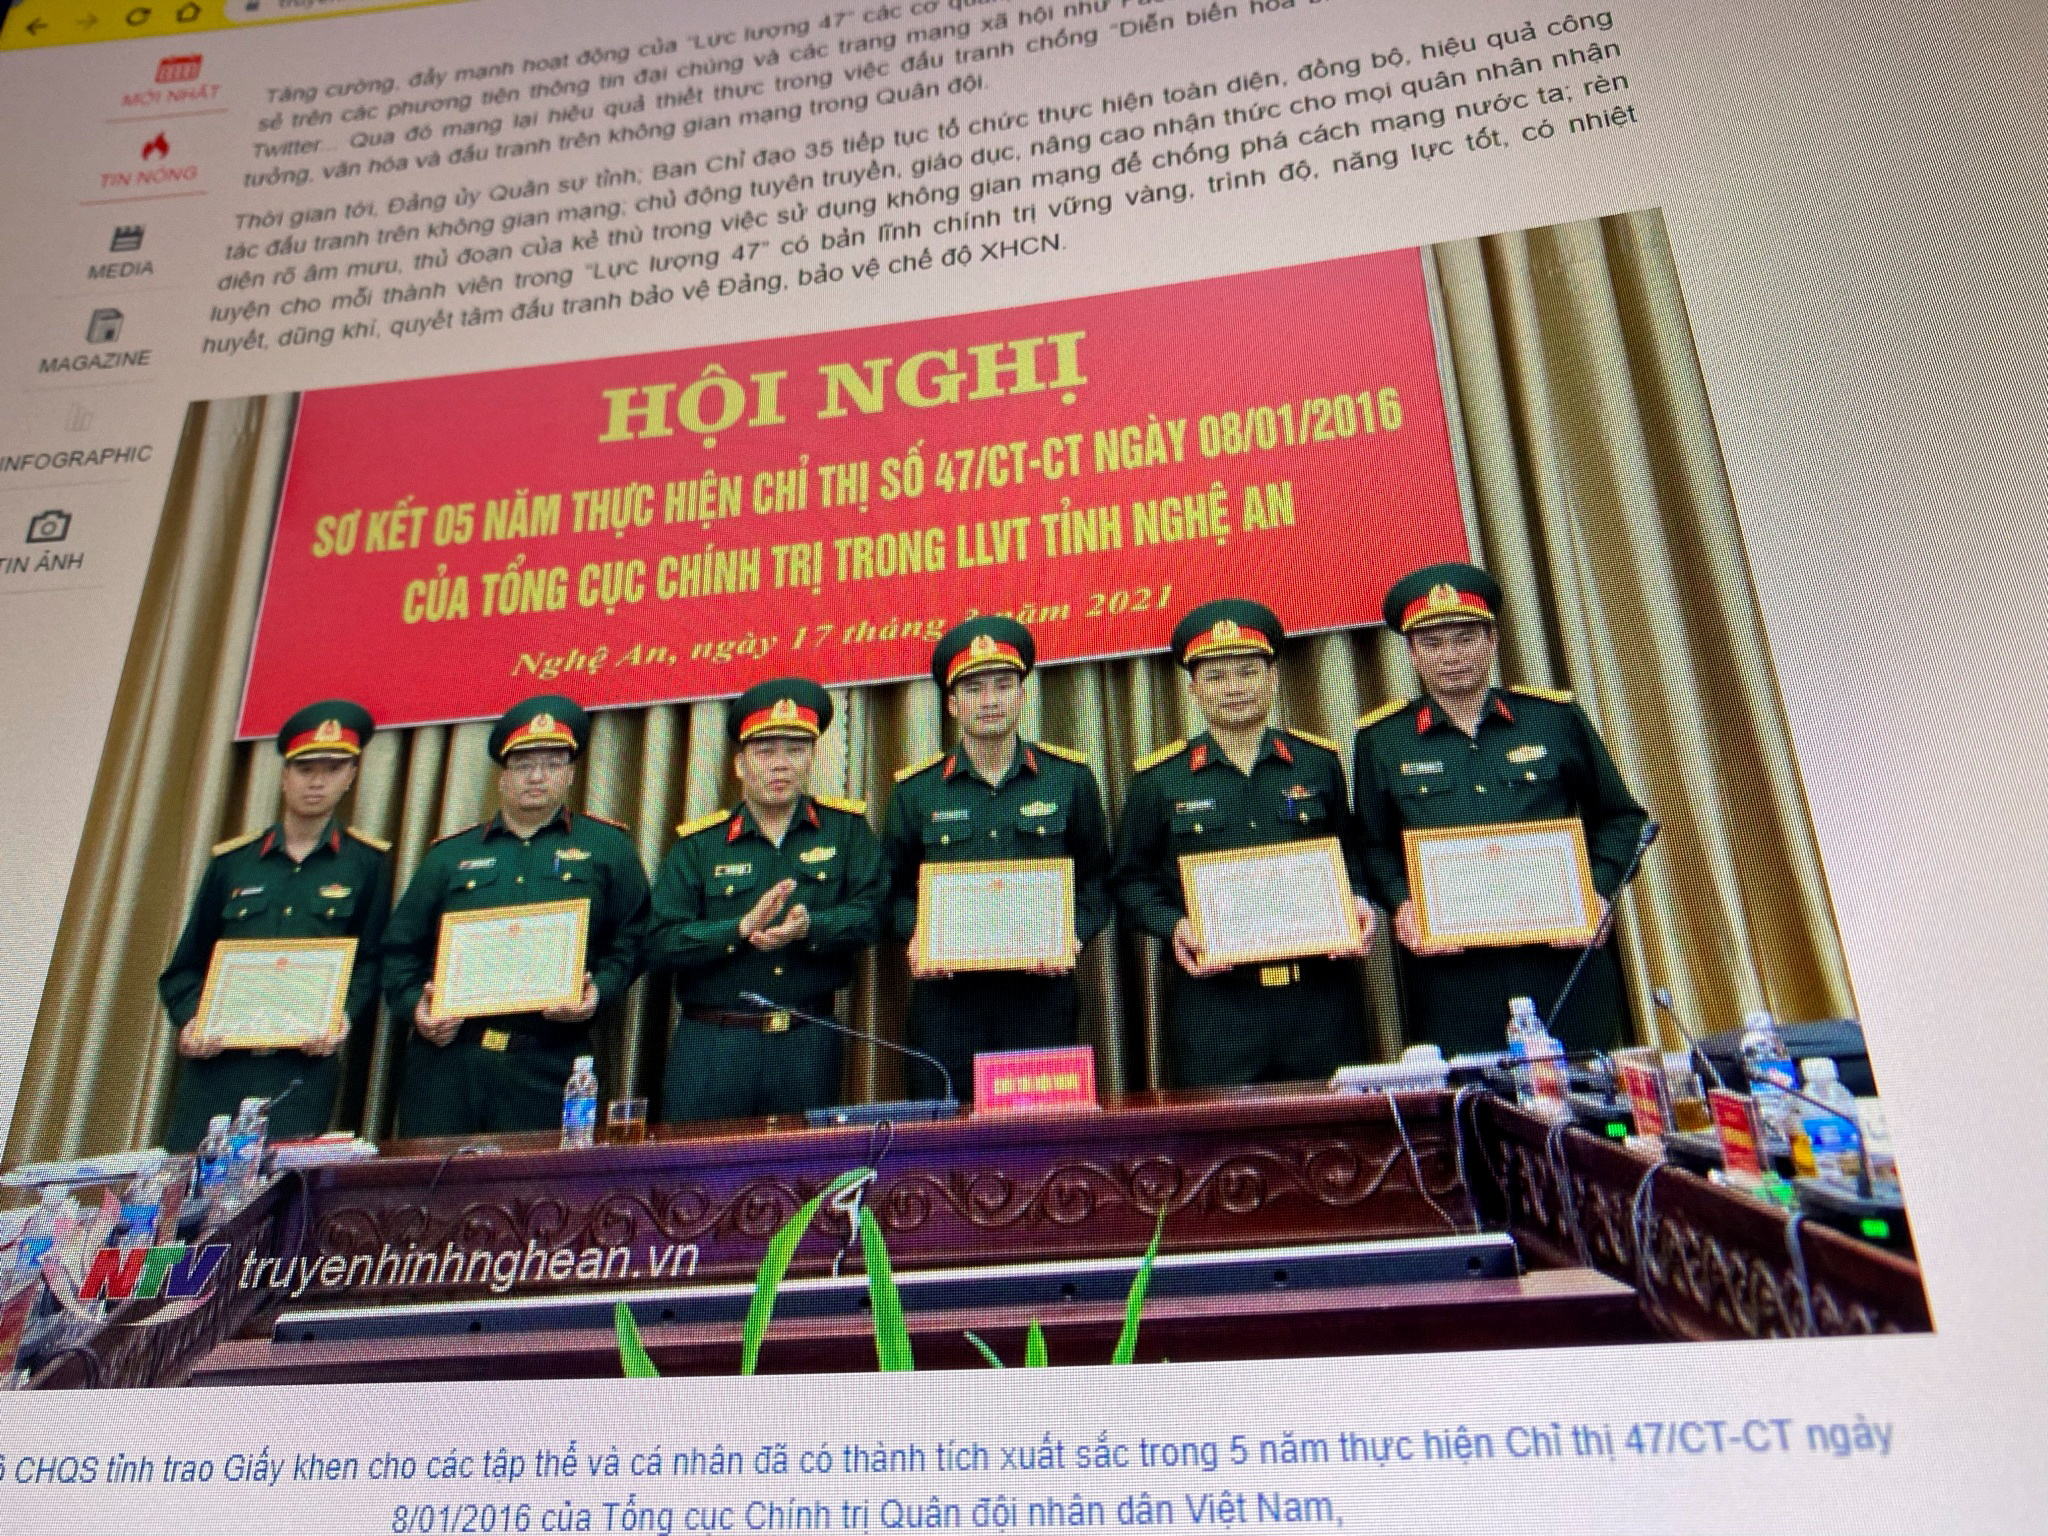 A state media article from March 17, 2021 with a picture of soldiers belonging to the Nghe An provincial branch of Vietnam's 'Force 47' cyber army who were awarded certificates for carrying out Force 47 activities is displayed on screen in this picture takenJuly 8, 2021. TRUYENHINHNGHEAN.VN via REUTERS